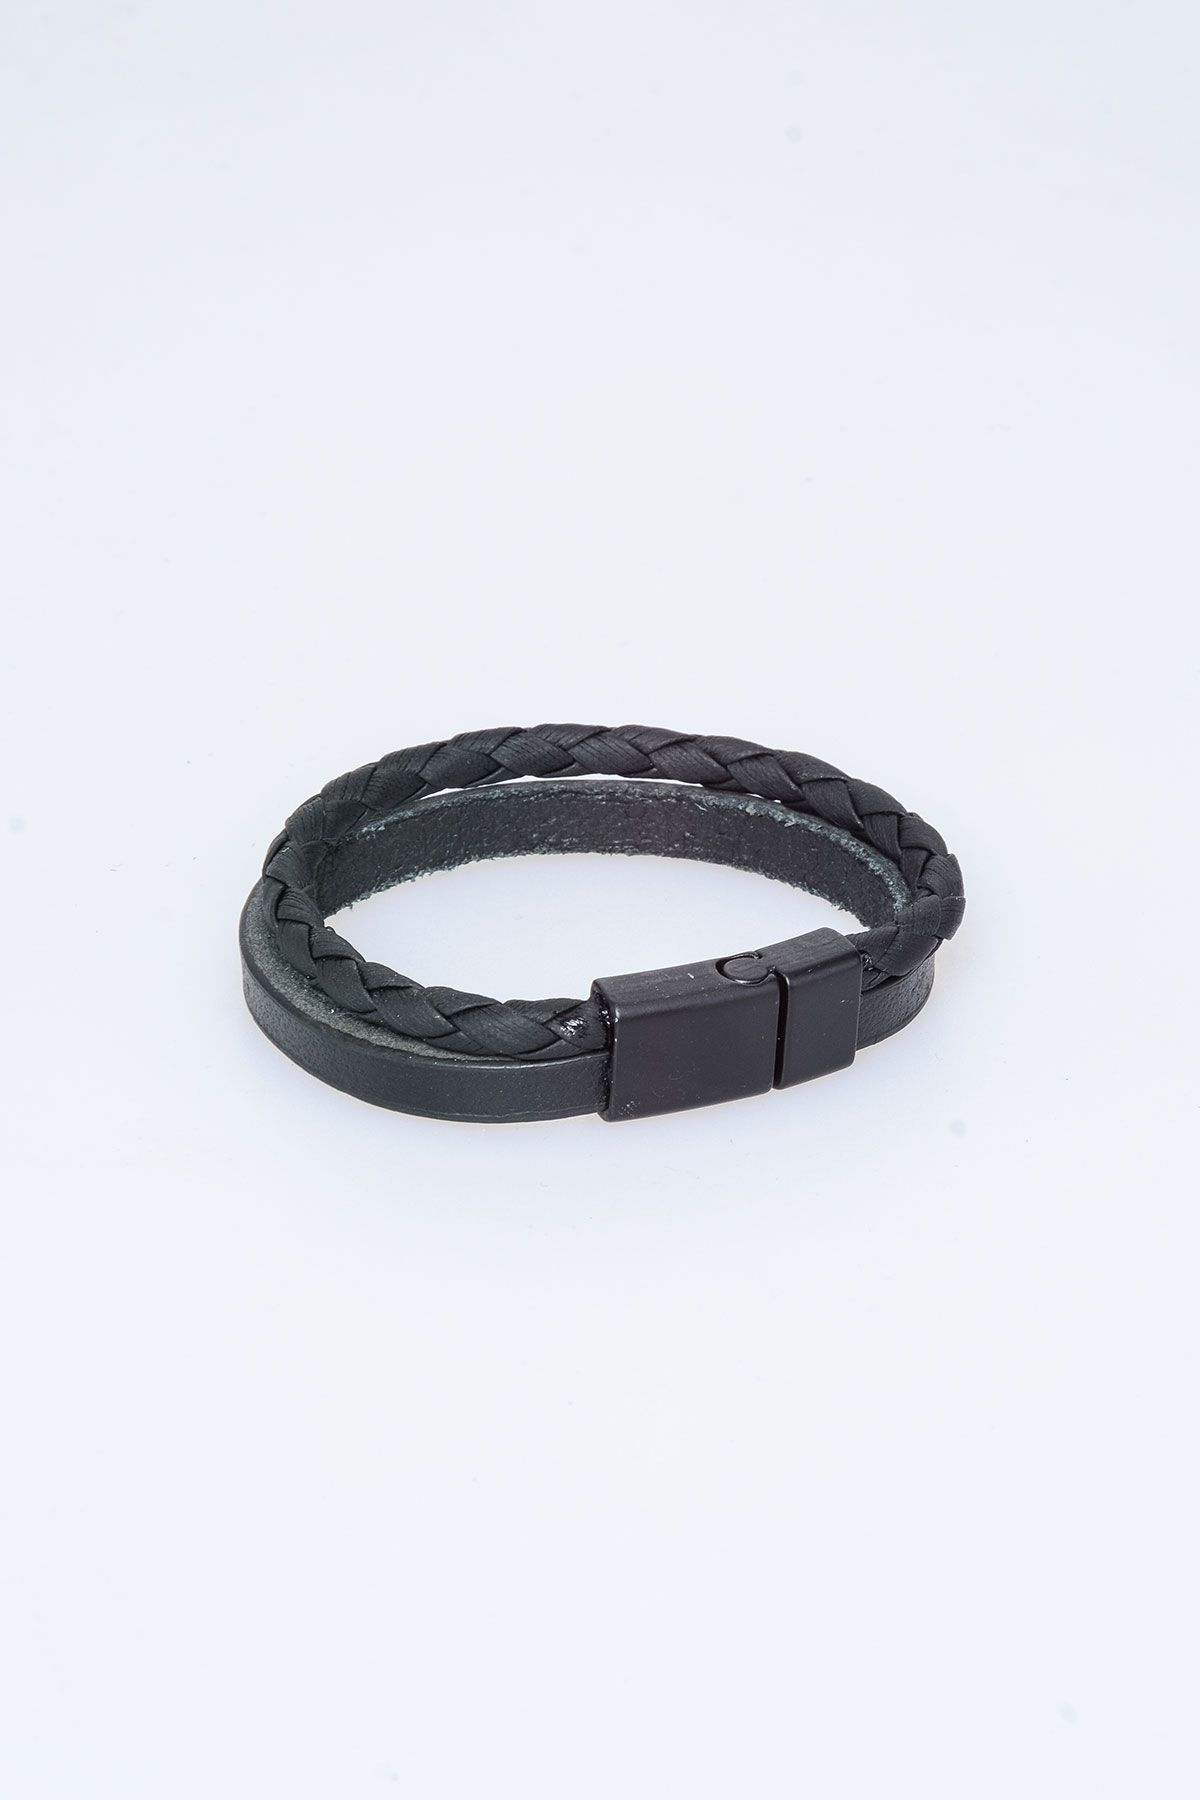 Pegia Genuine Leather Bracelet 19BL04 Black